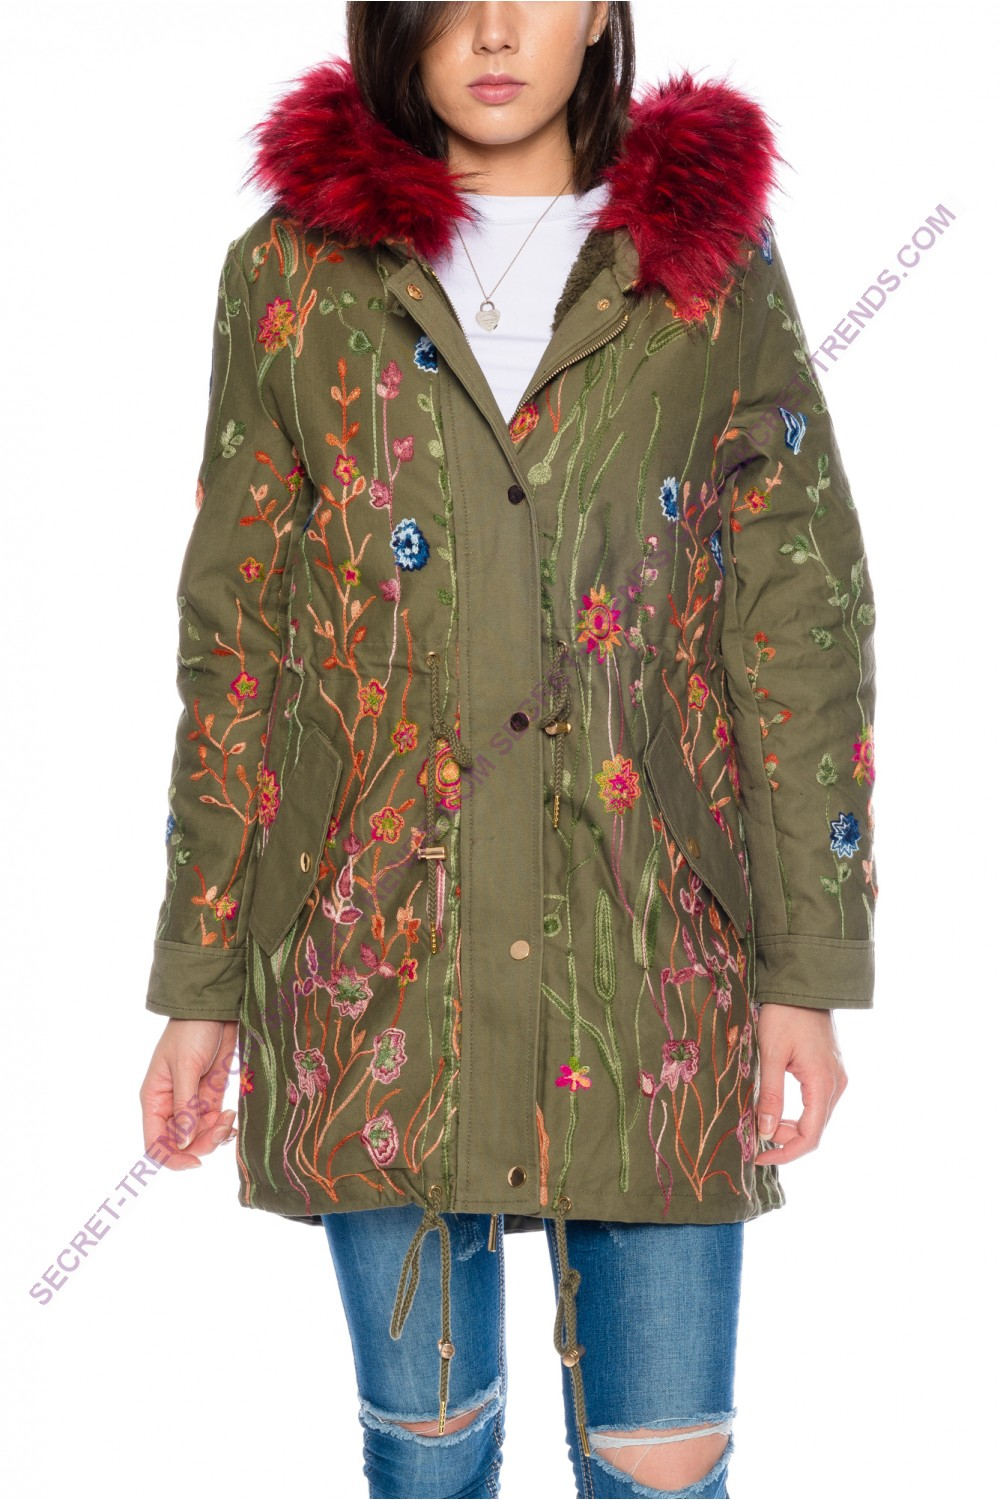 Beautiful Elegant Fine Women\'s Winter Jacket with floral embroidery ...